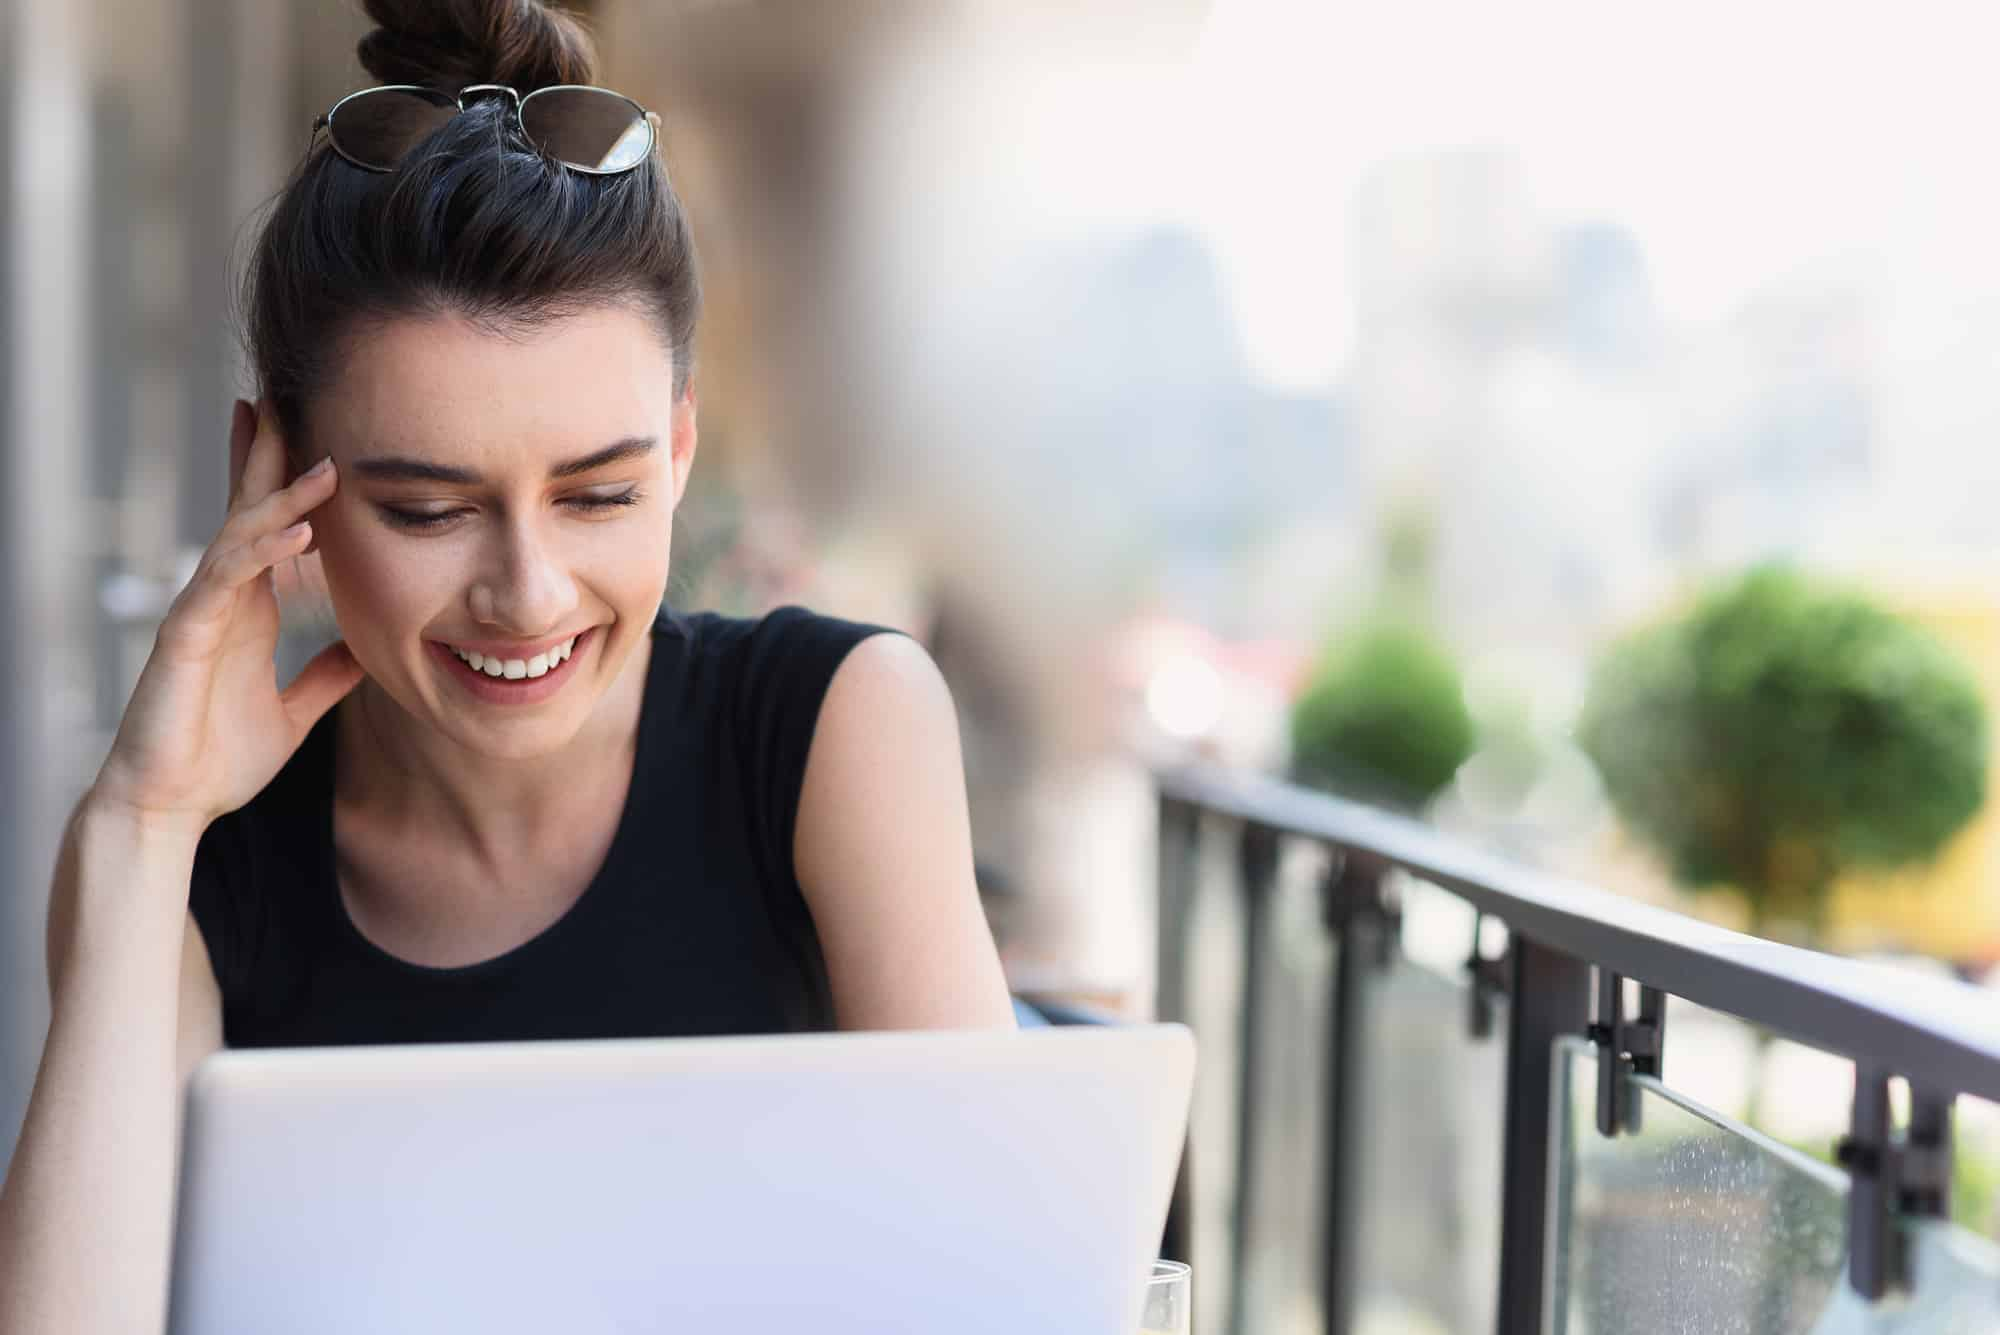 Woman smiling and looking at computer screen